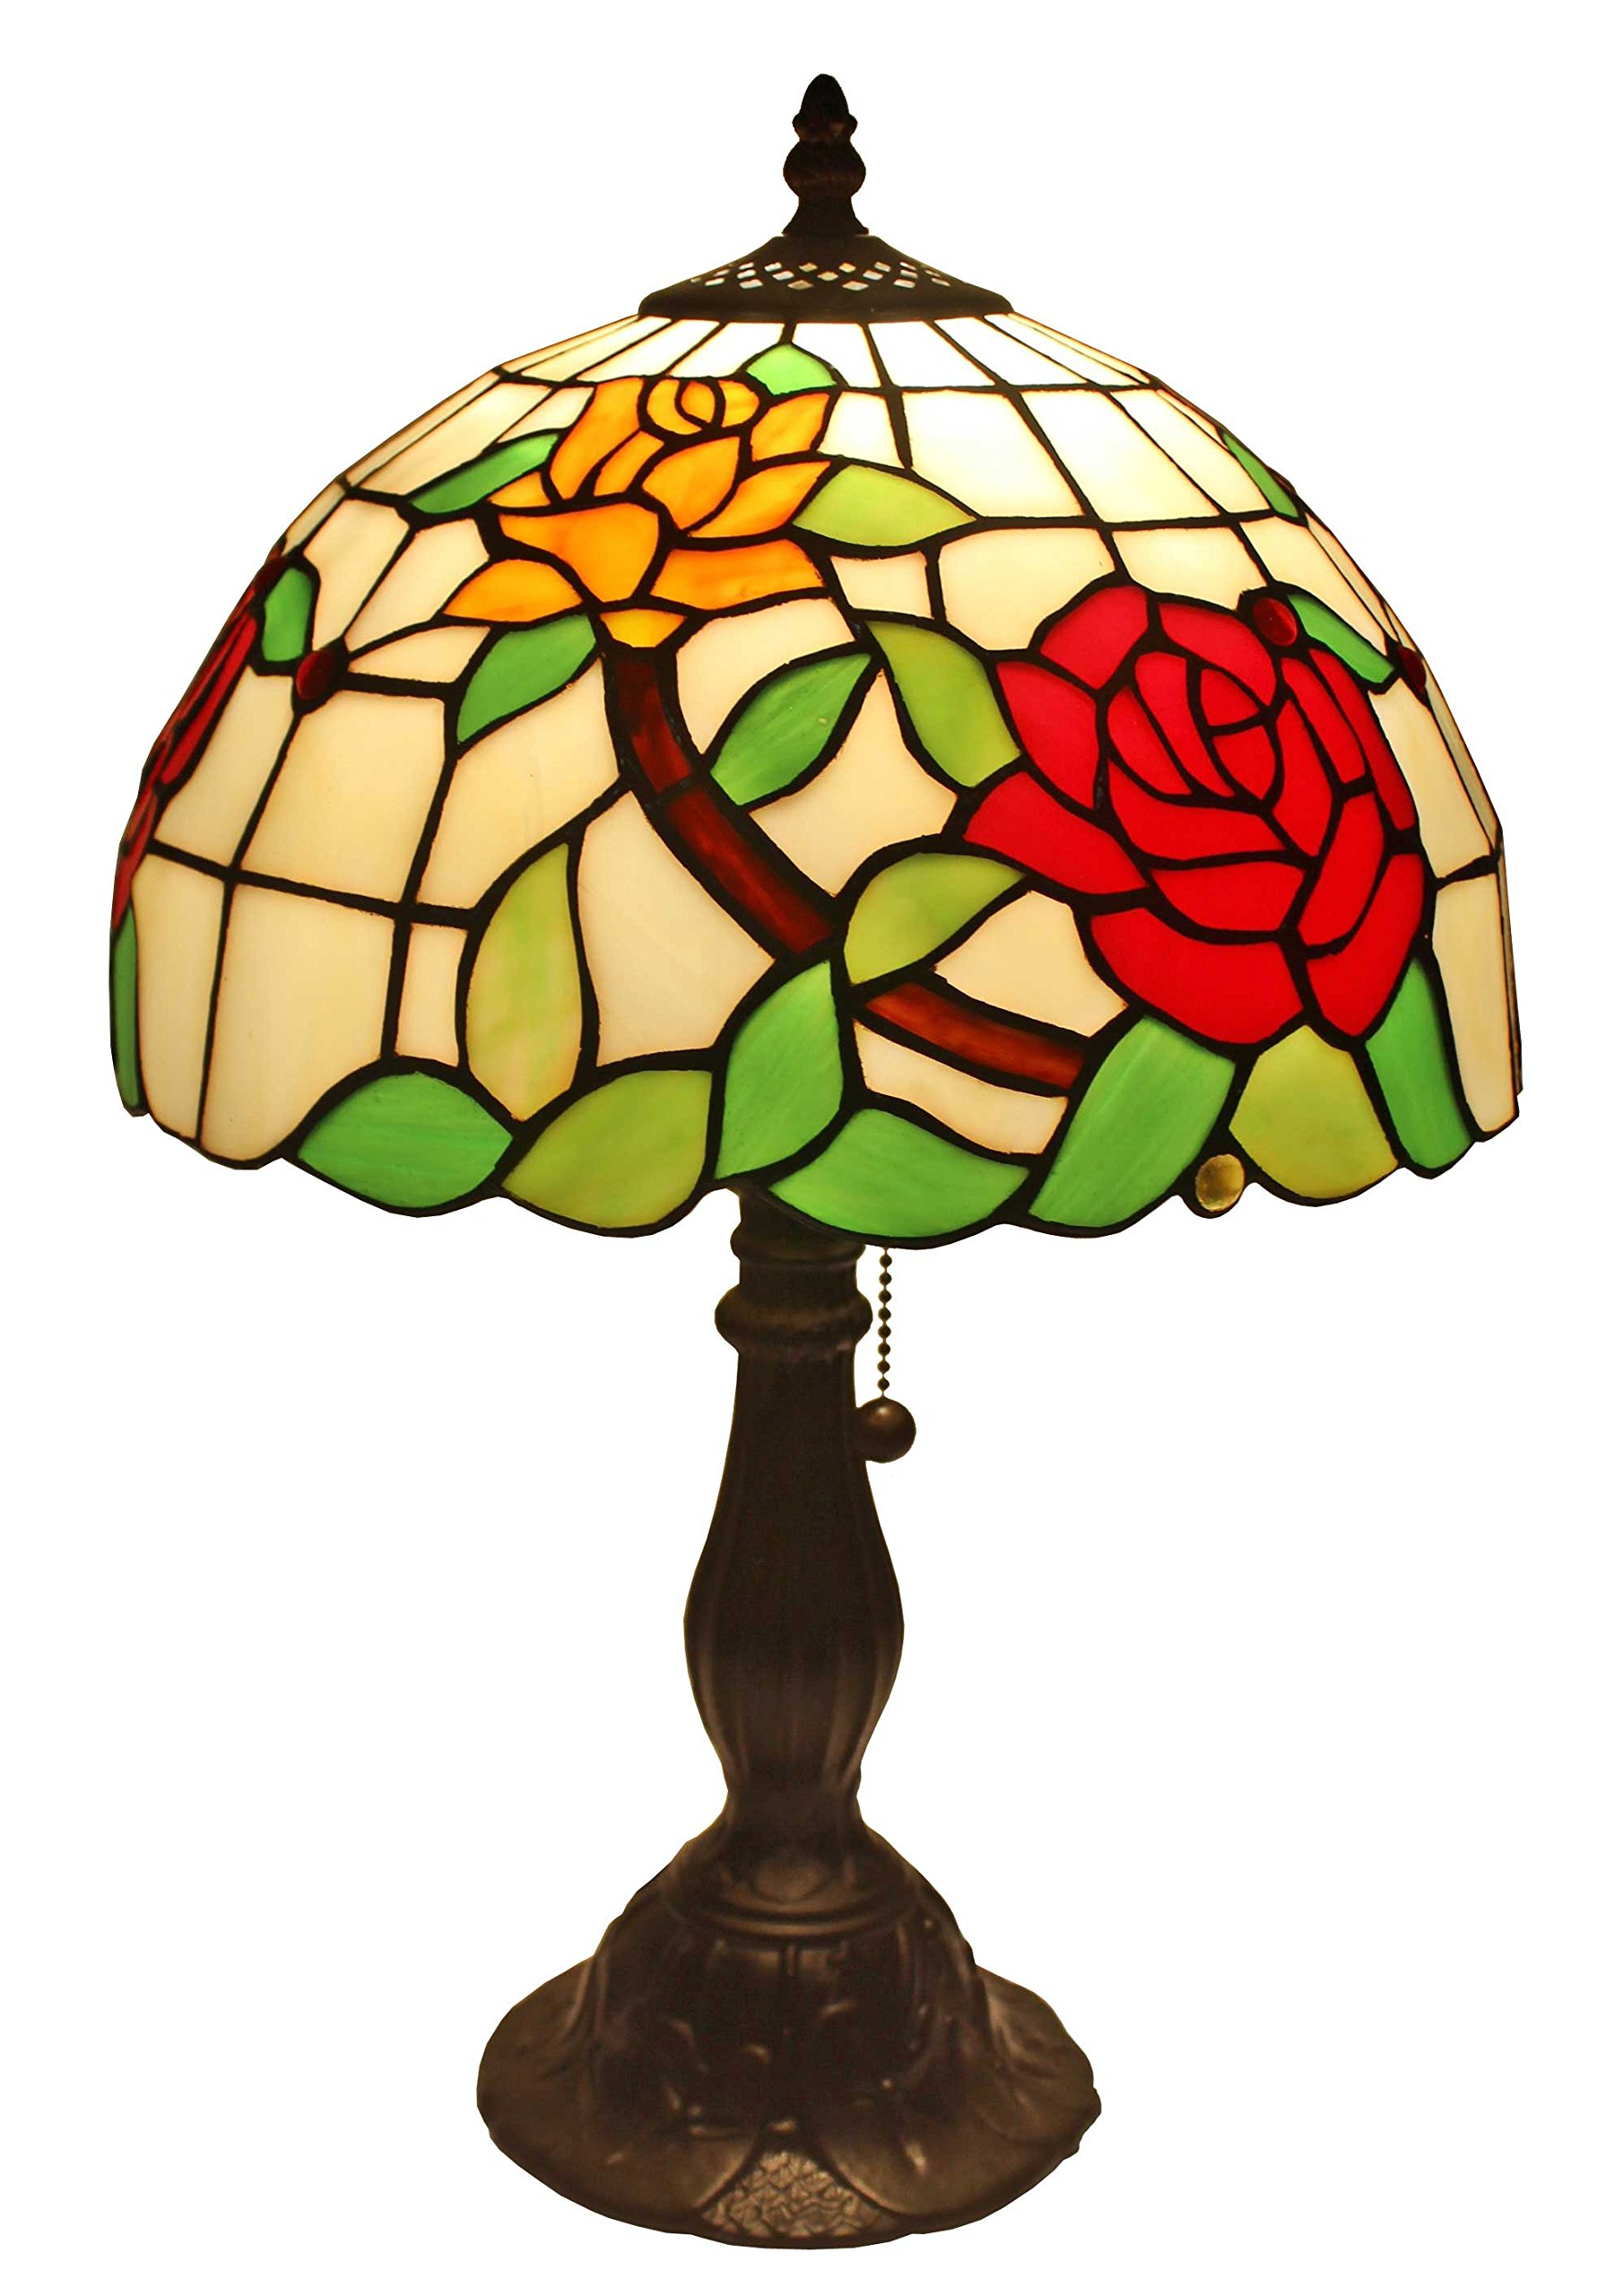 Amora Lighting Tiffany Style AM043TL12 Floral Design 19-inch Table Lamp